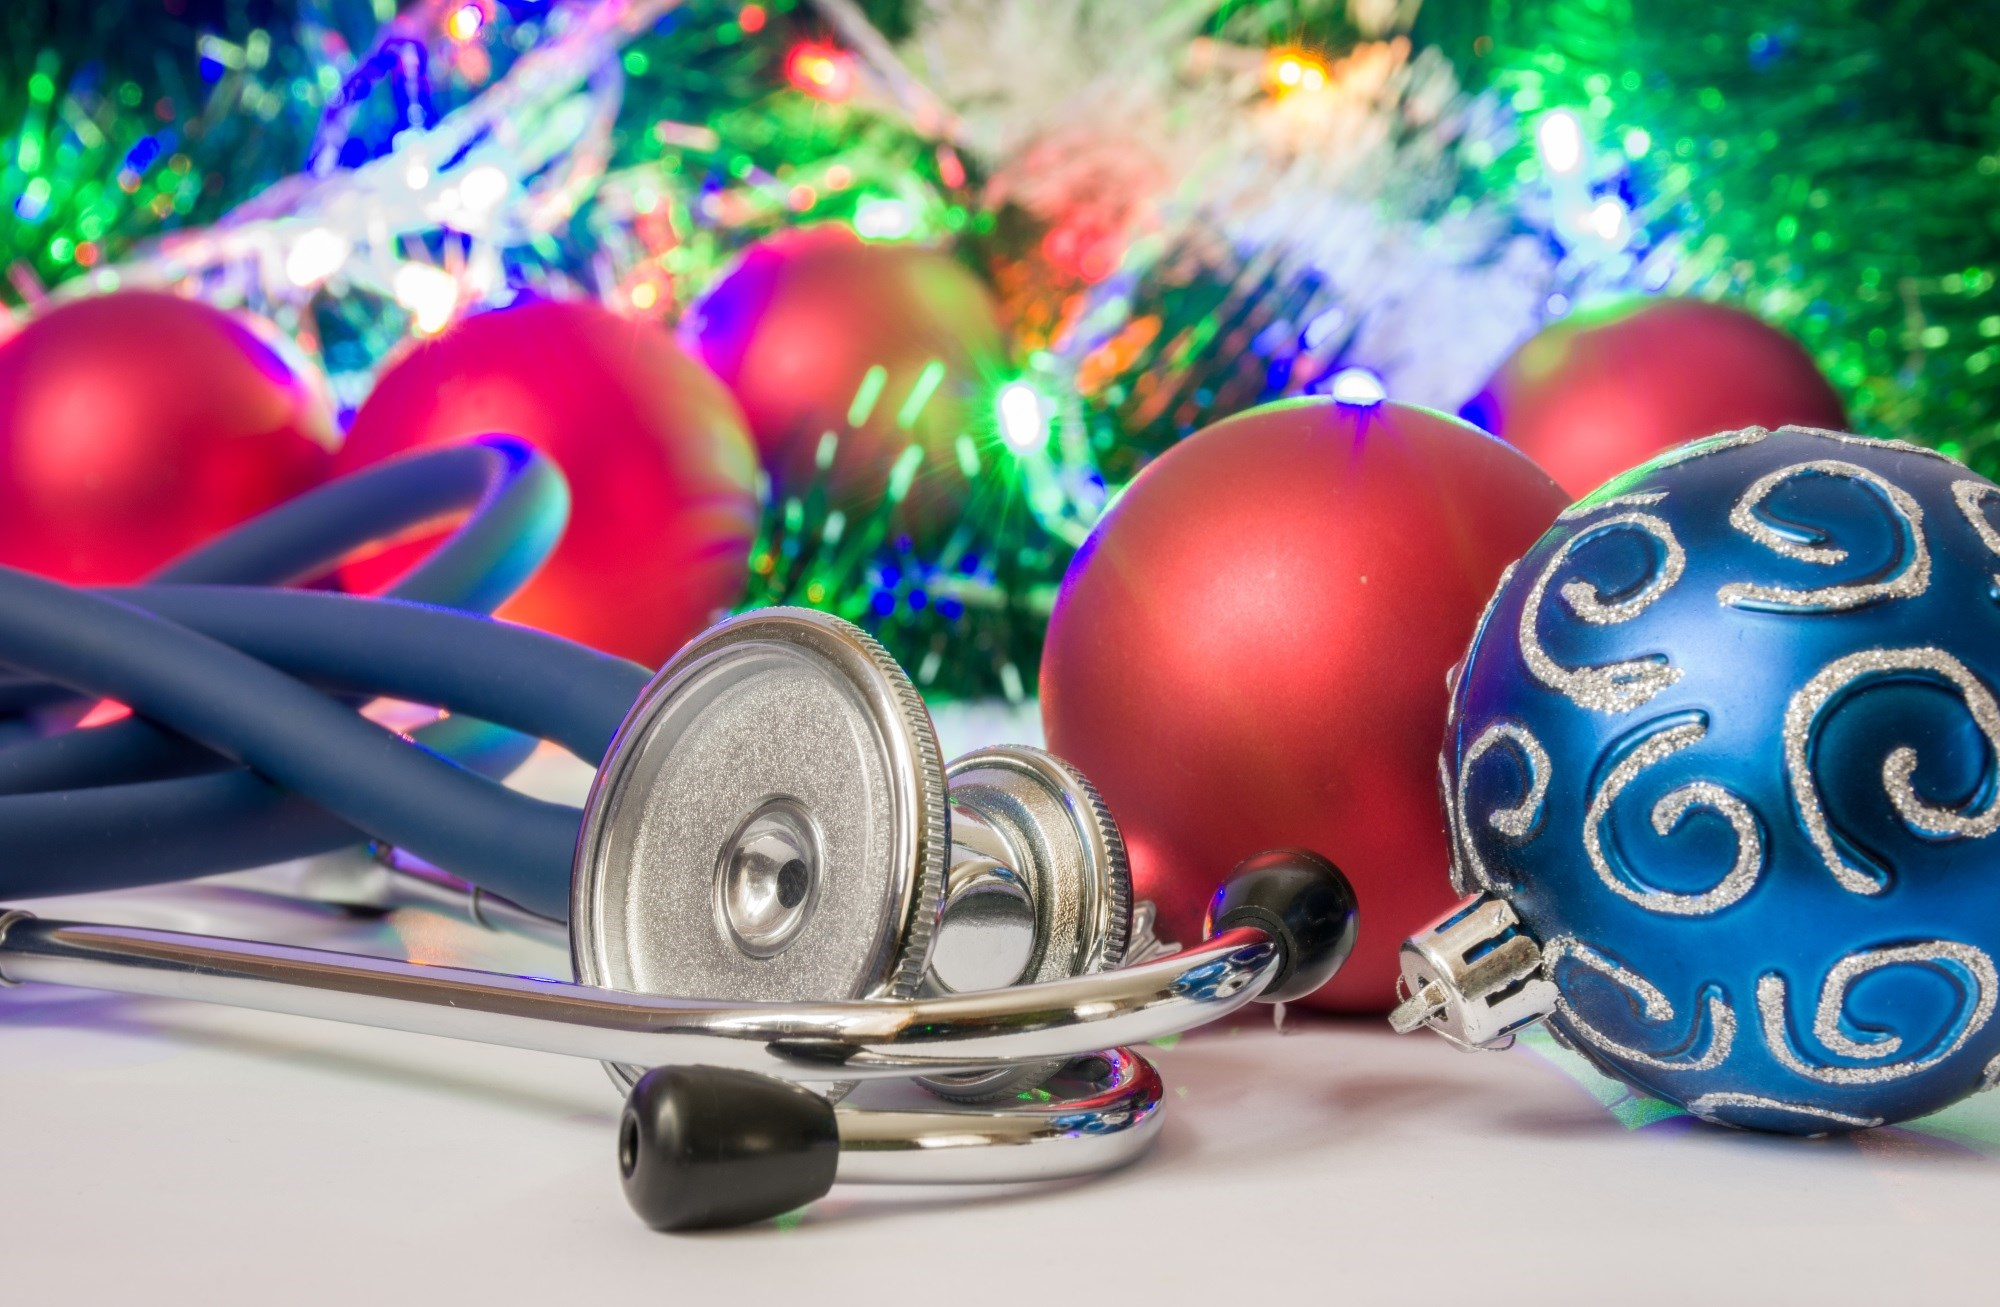 For many physicians, working during the holiday season is simply part of the job.